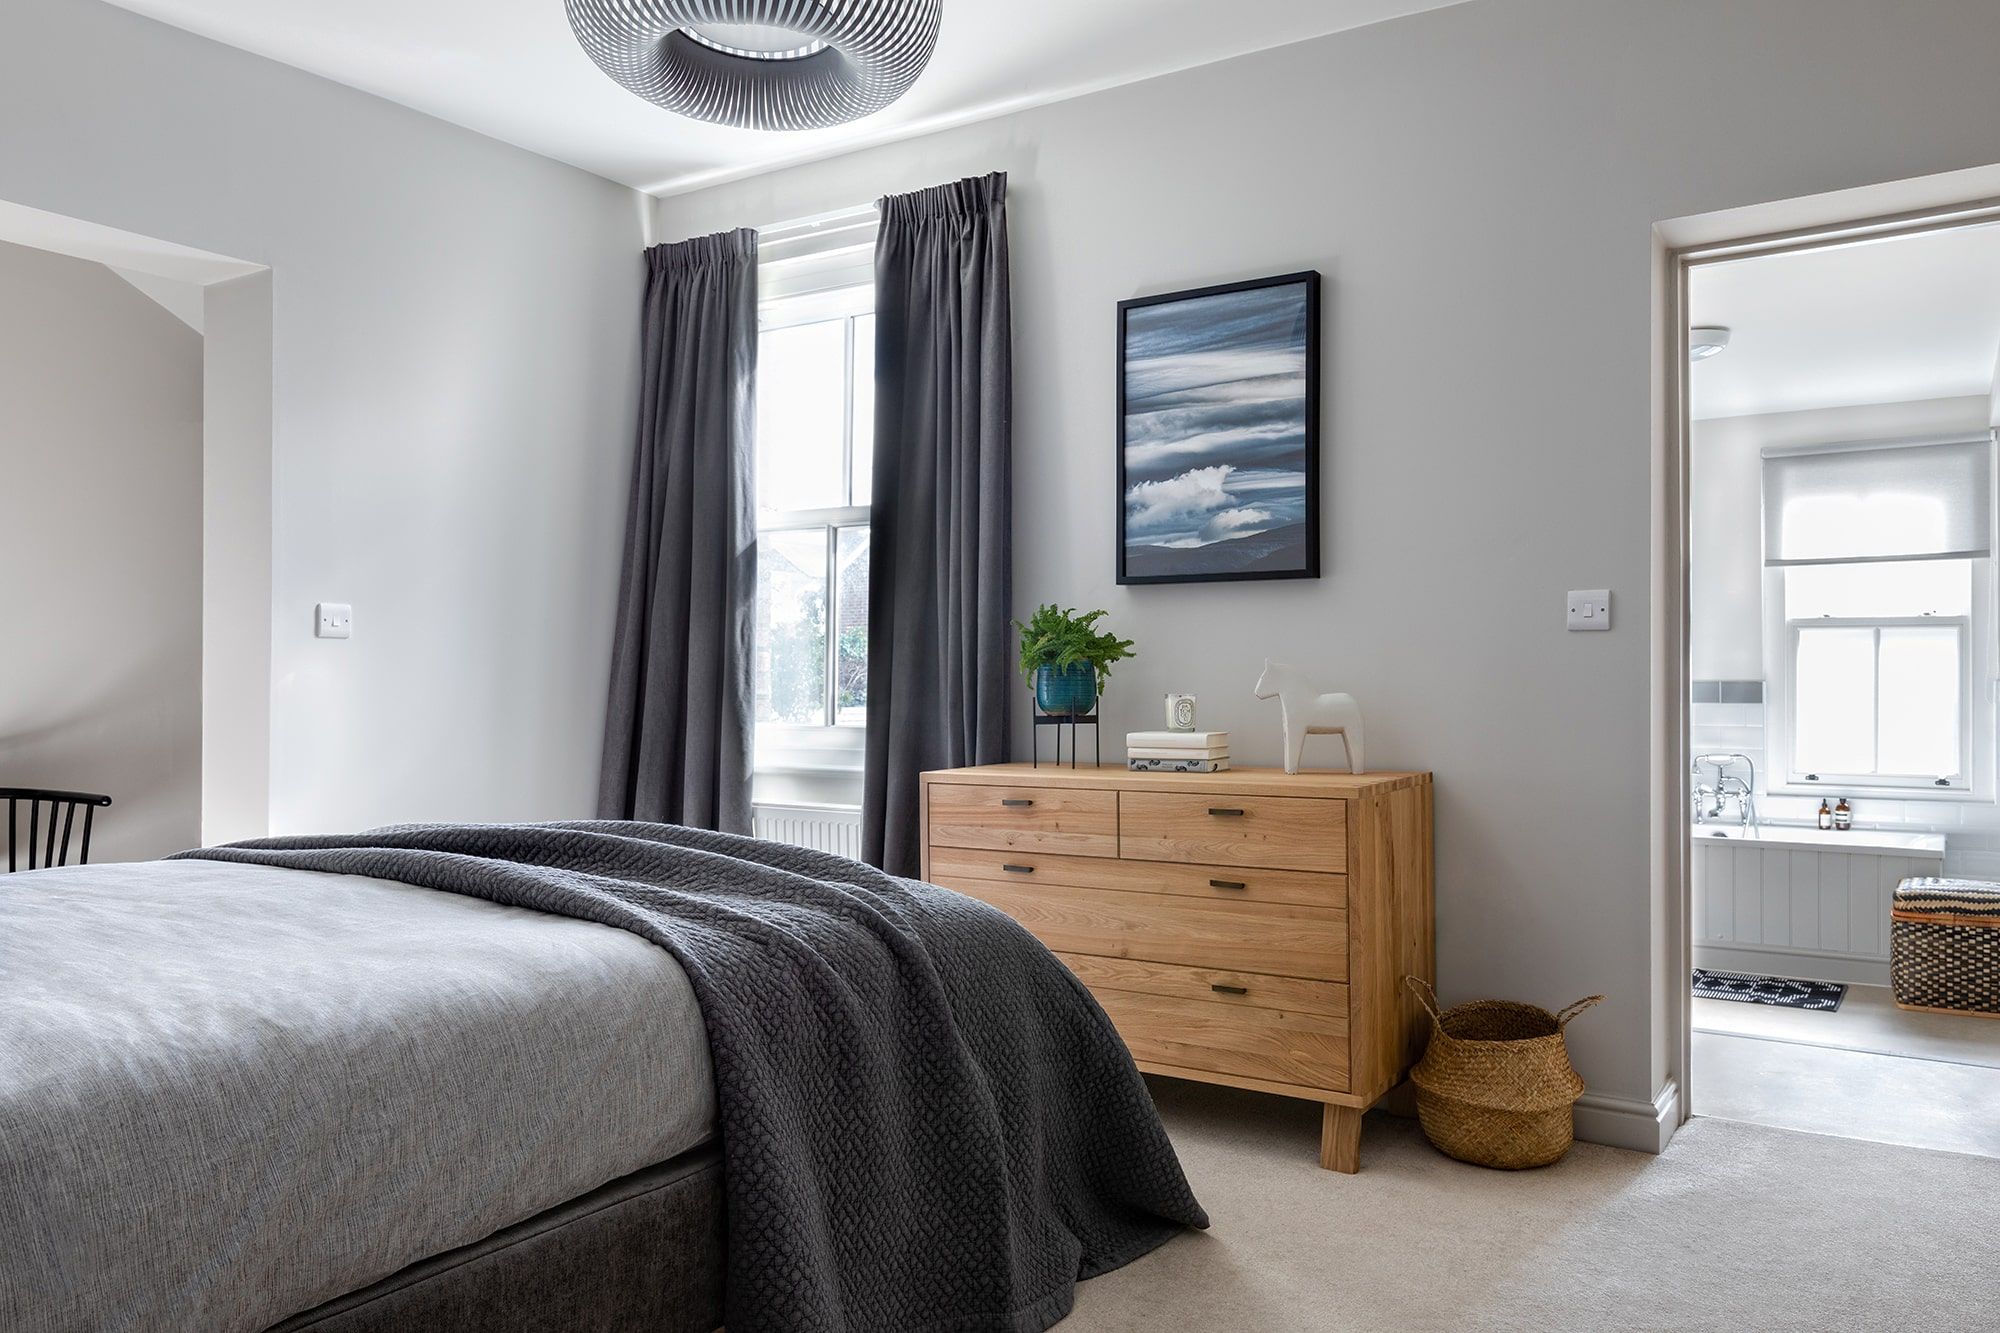 interior design photo: bedroom with light grey walls; grey ceiling light; bed with grey bedding; chest of drawers; abstract blue poster on the wall